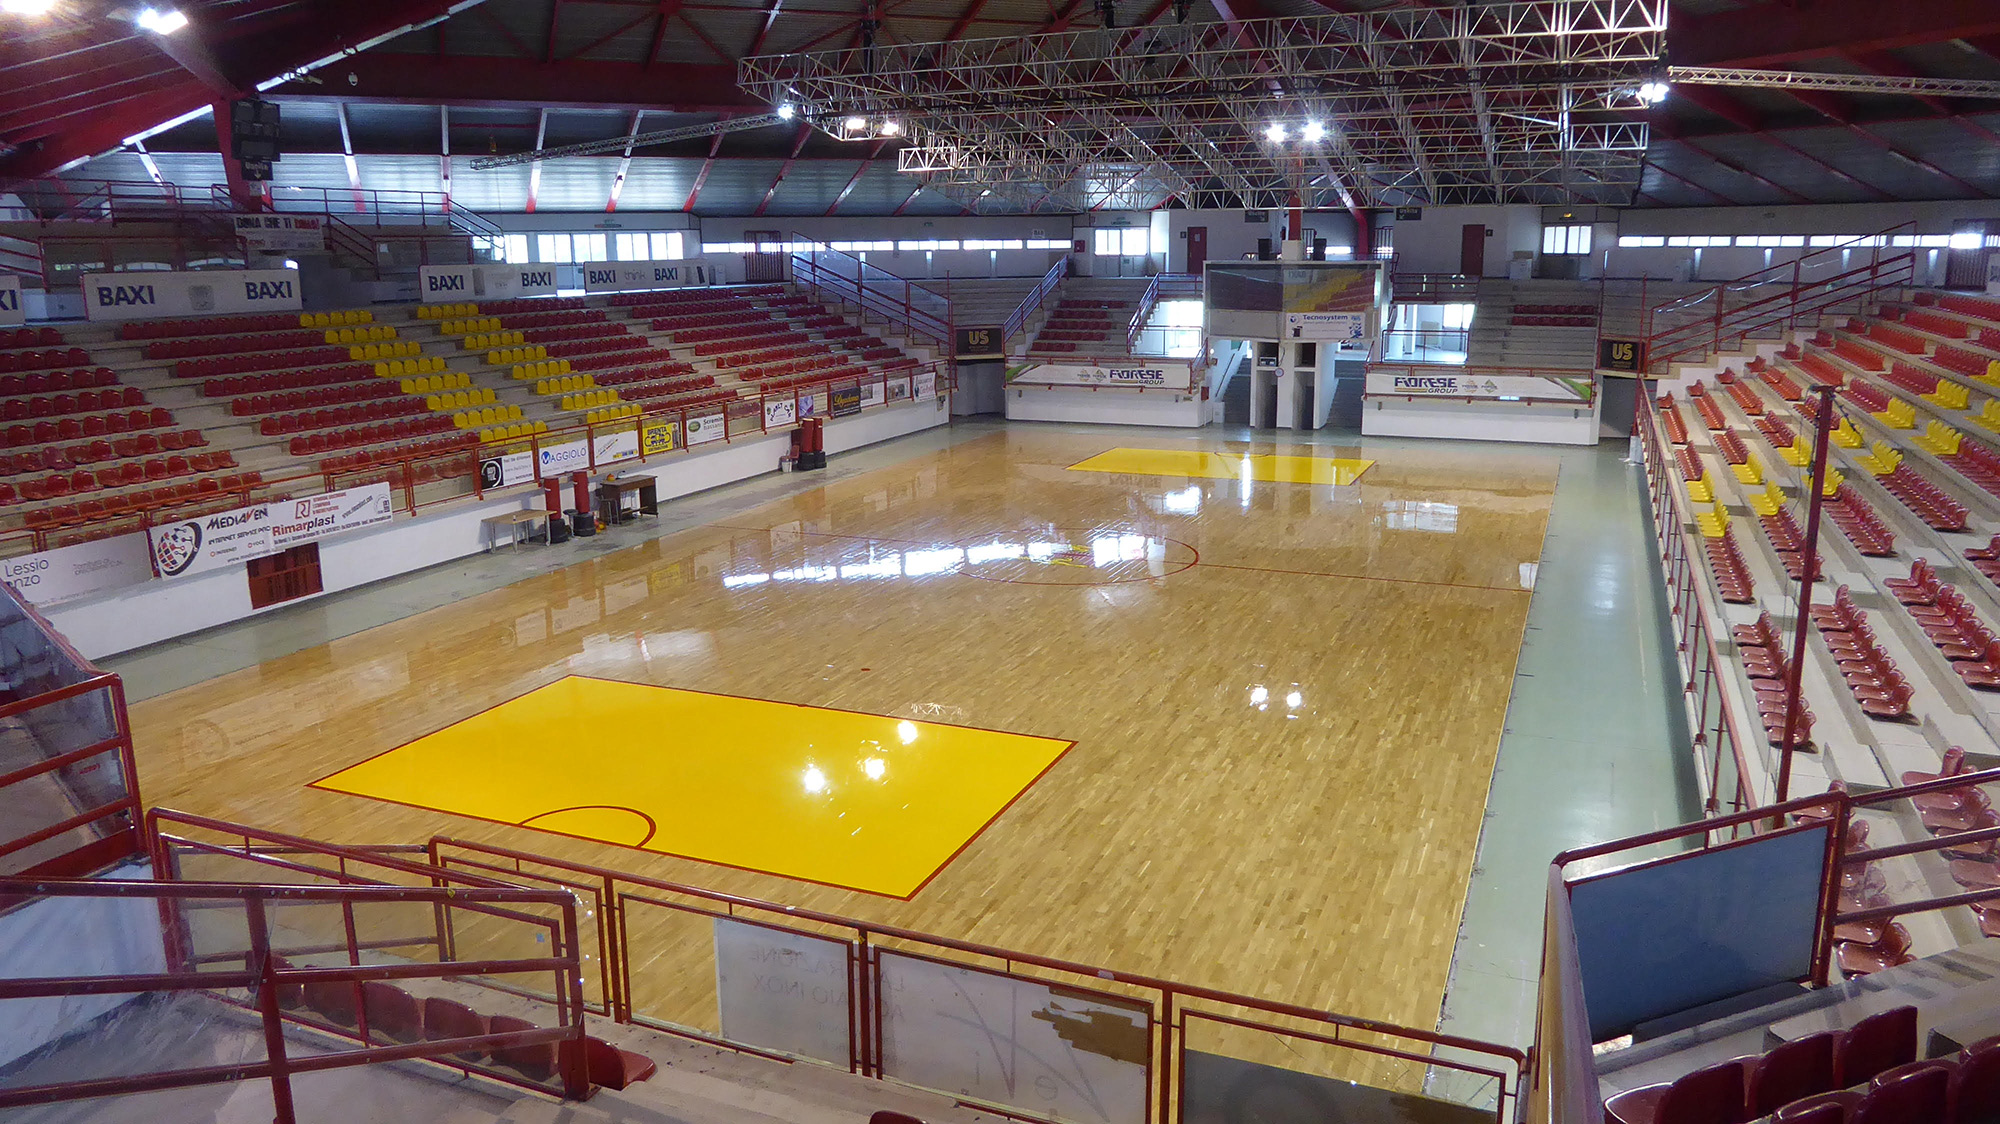 Bassano del grappa new sports parquet for the sports hall of hockey - Cucine bassano del grappa ...